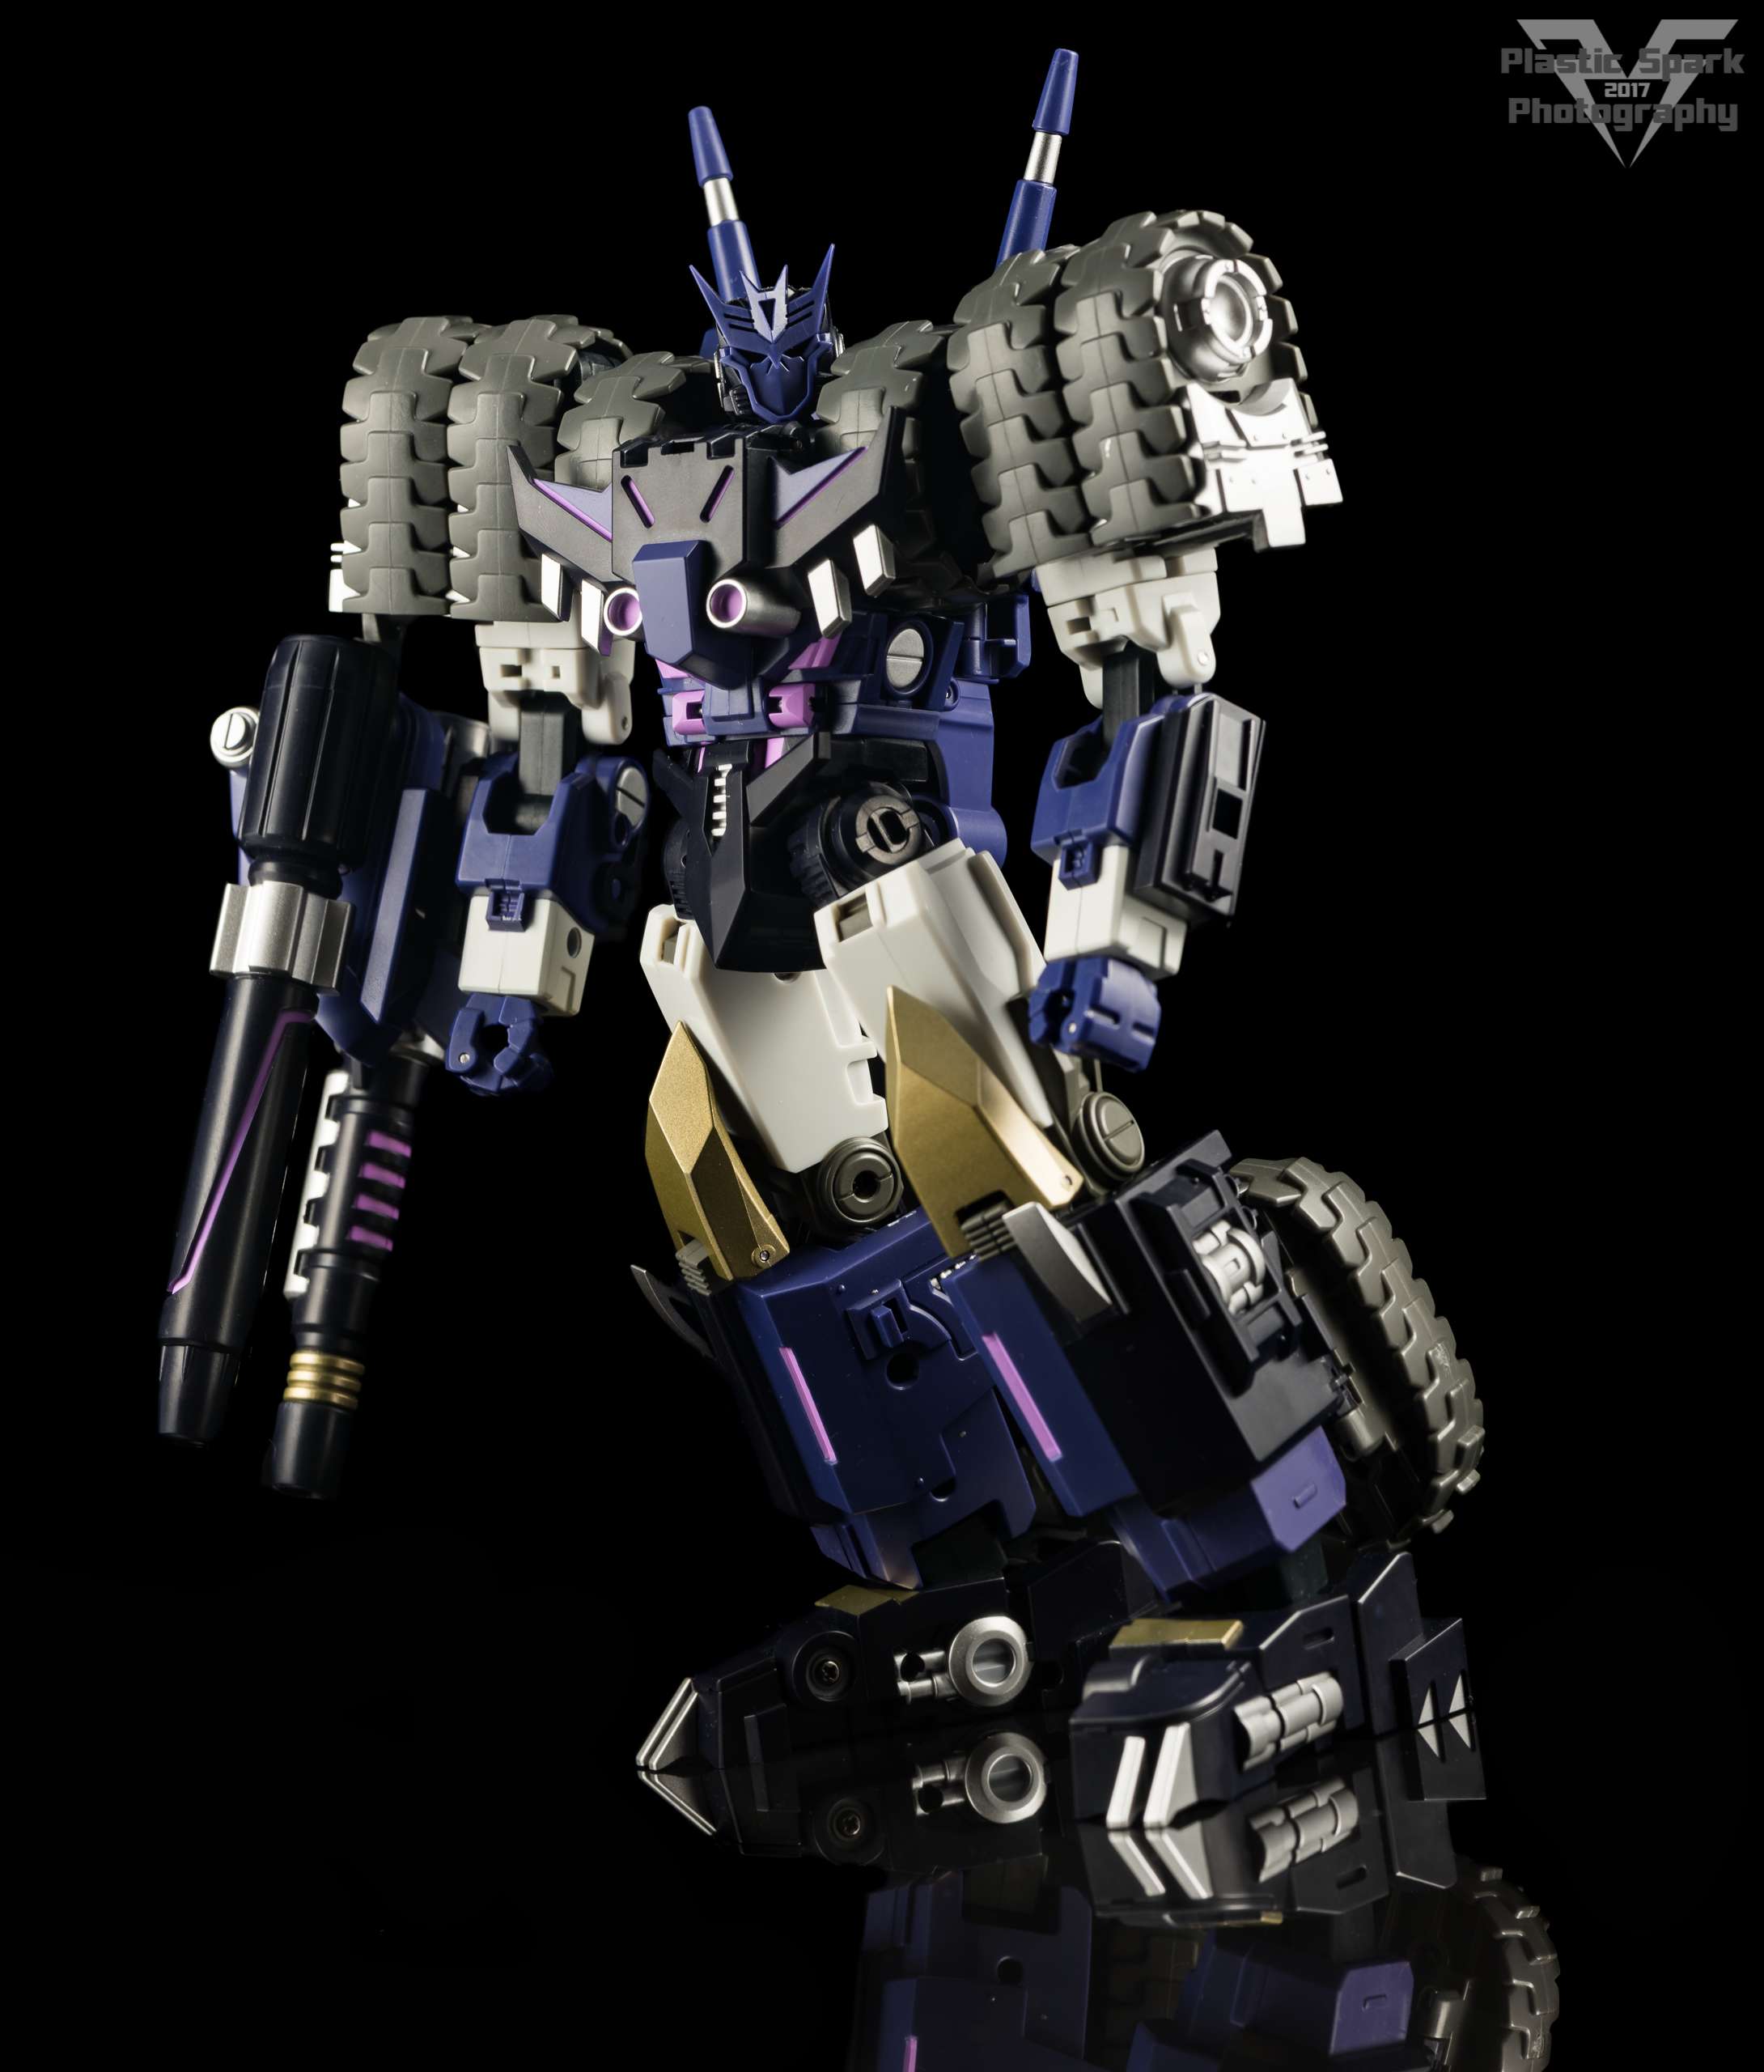 Mastermind-Creations-R-19-Kultur-(17-of-24).png